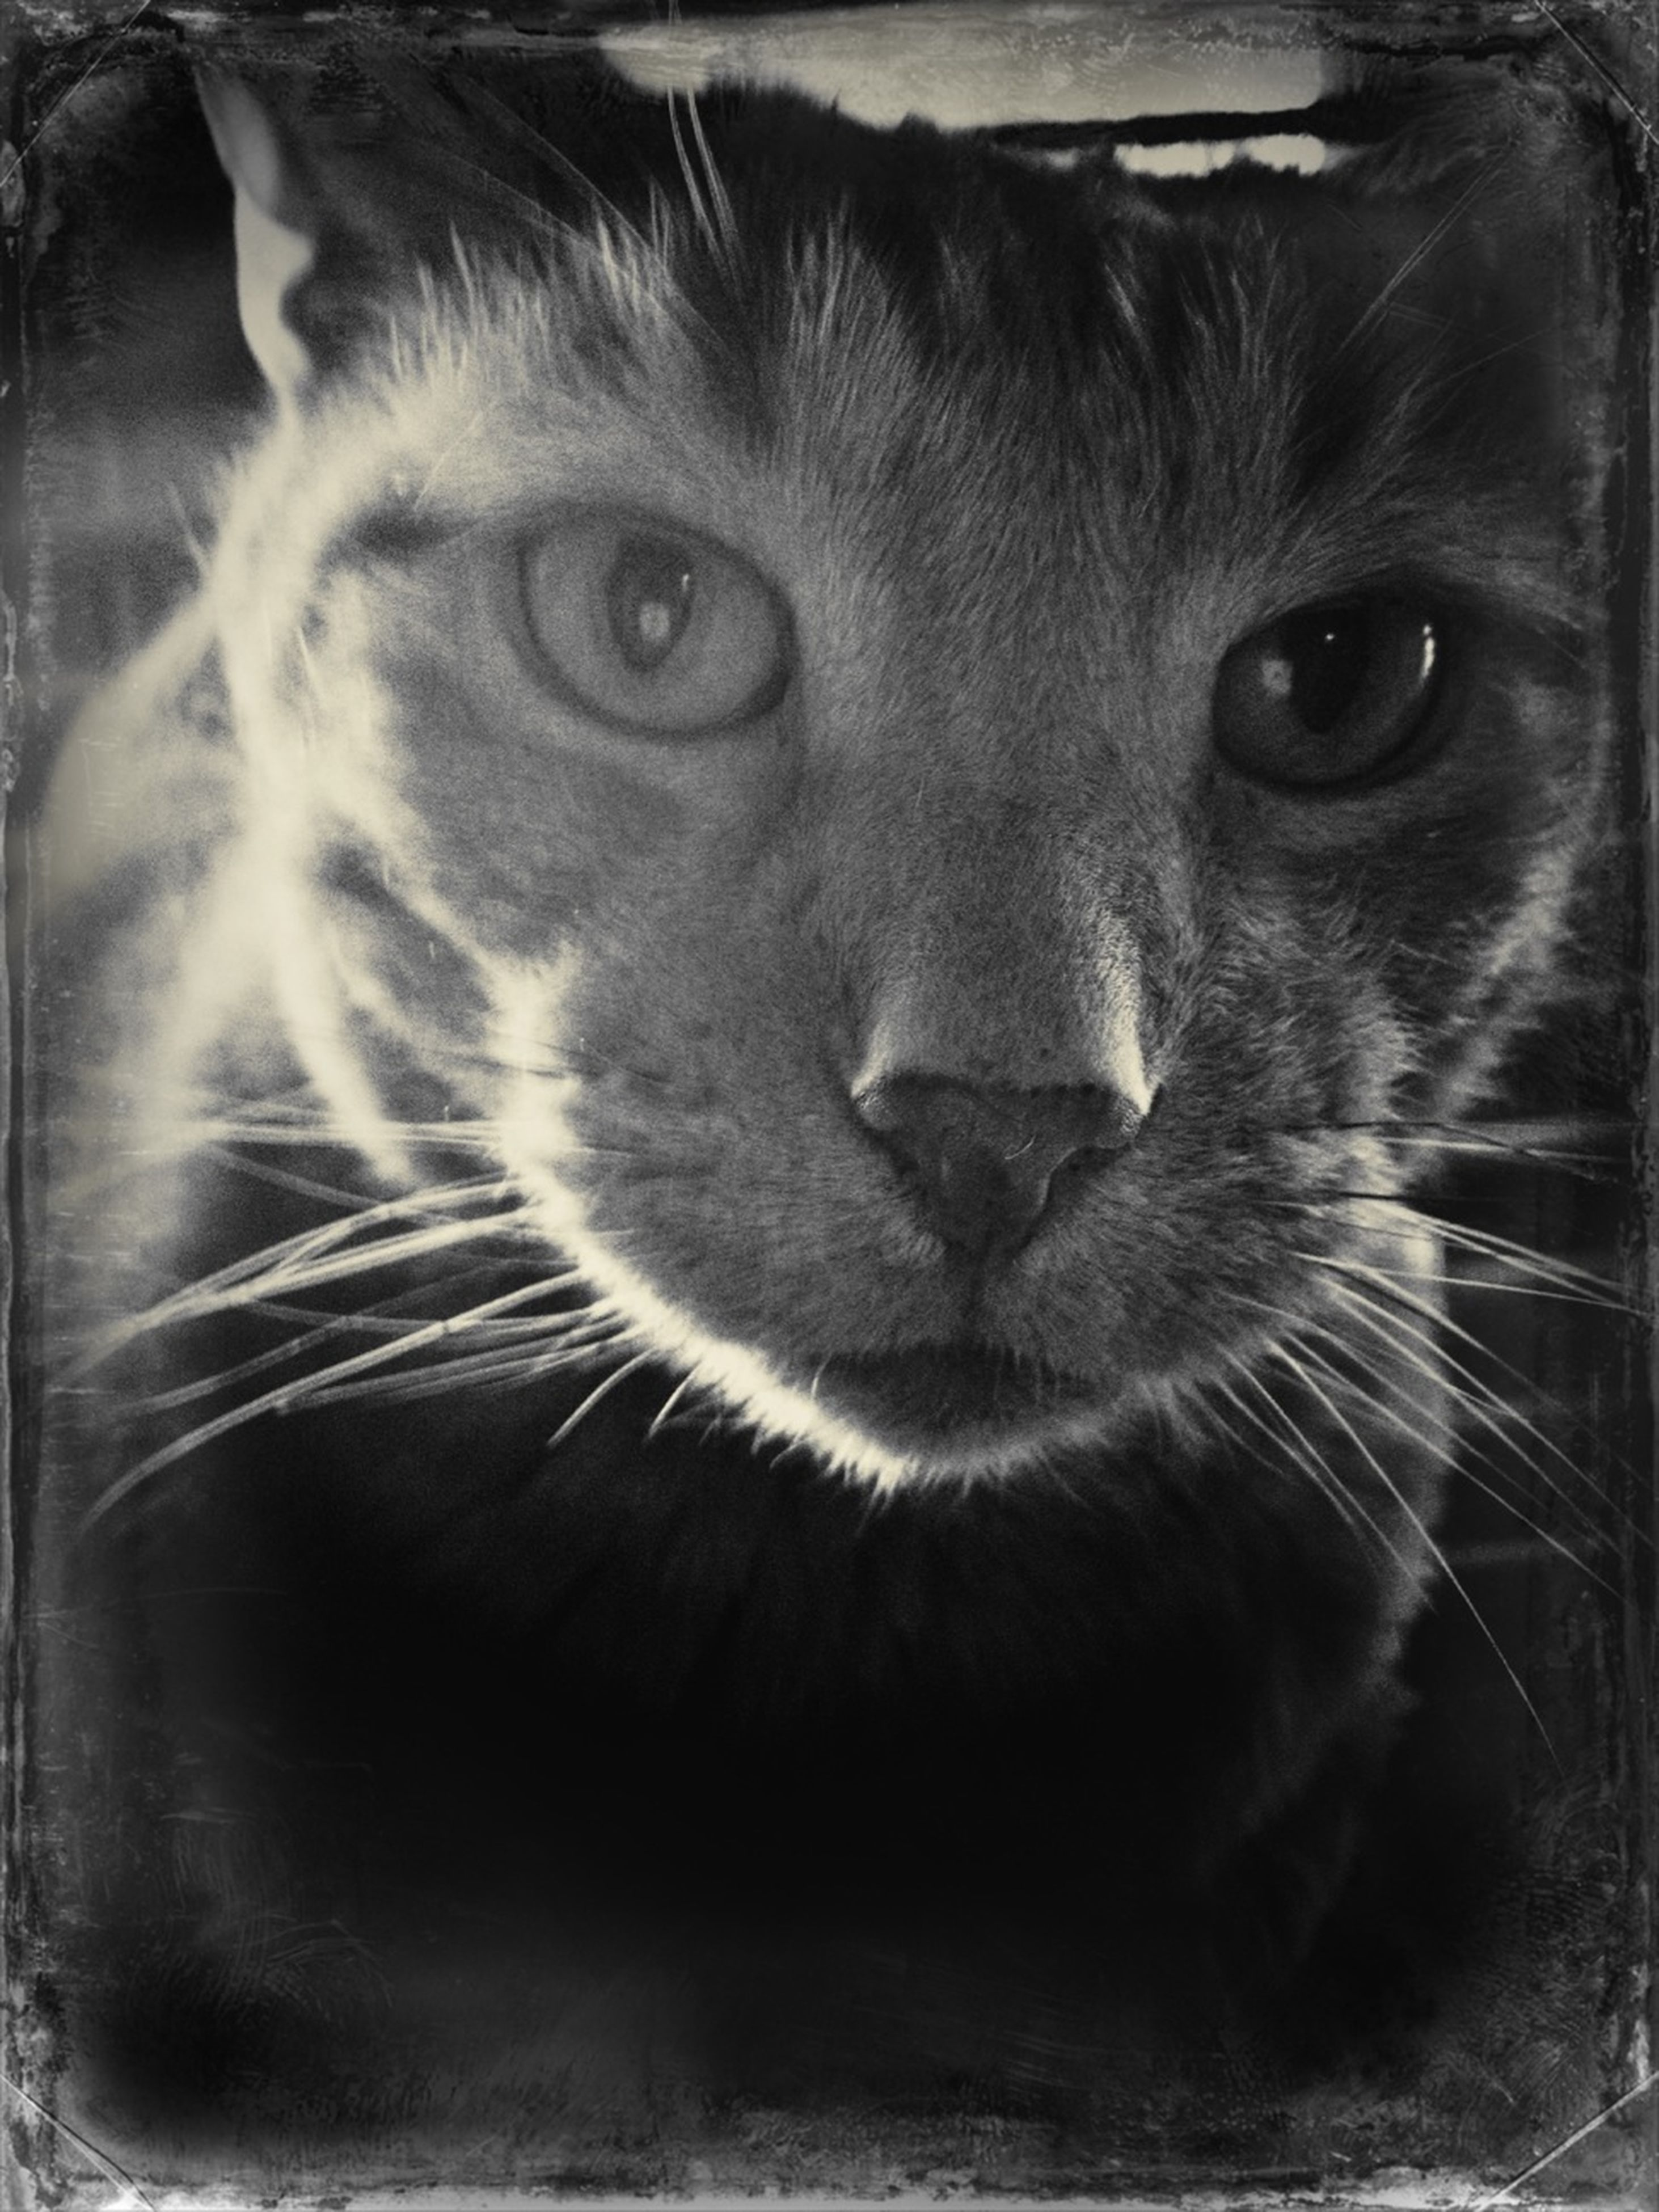 one animal, animal themes, pets, domestic animals, domestic cat, mammal, cat, whisker, feline, portrait, close-up, animal head, looking at camera, indoors, animal eye, staring, animal body part, focus on foreground, alertness